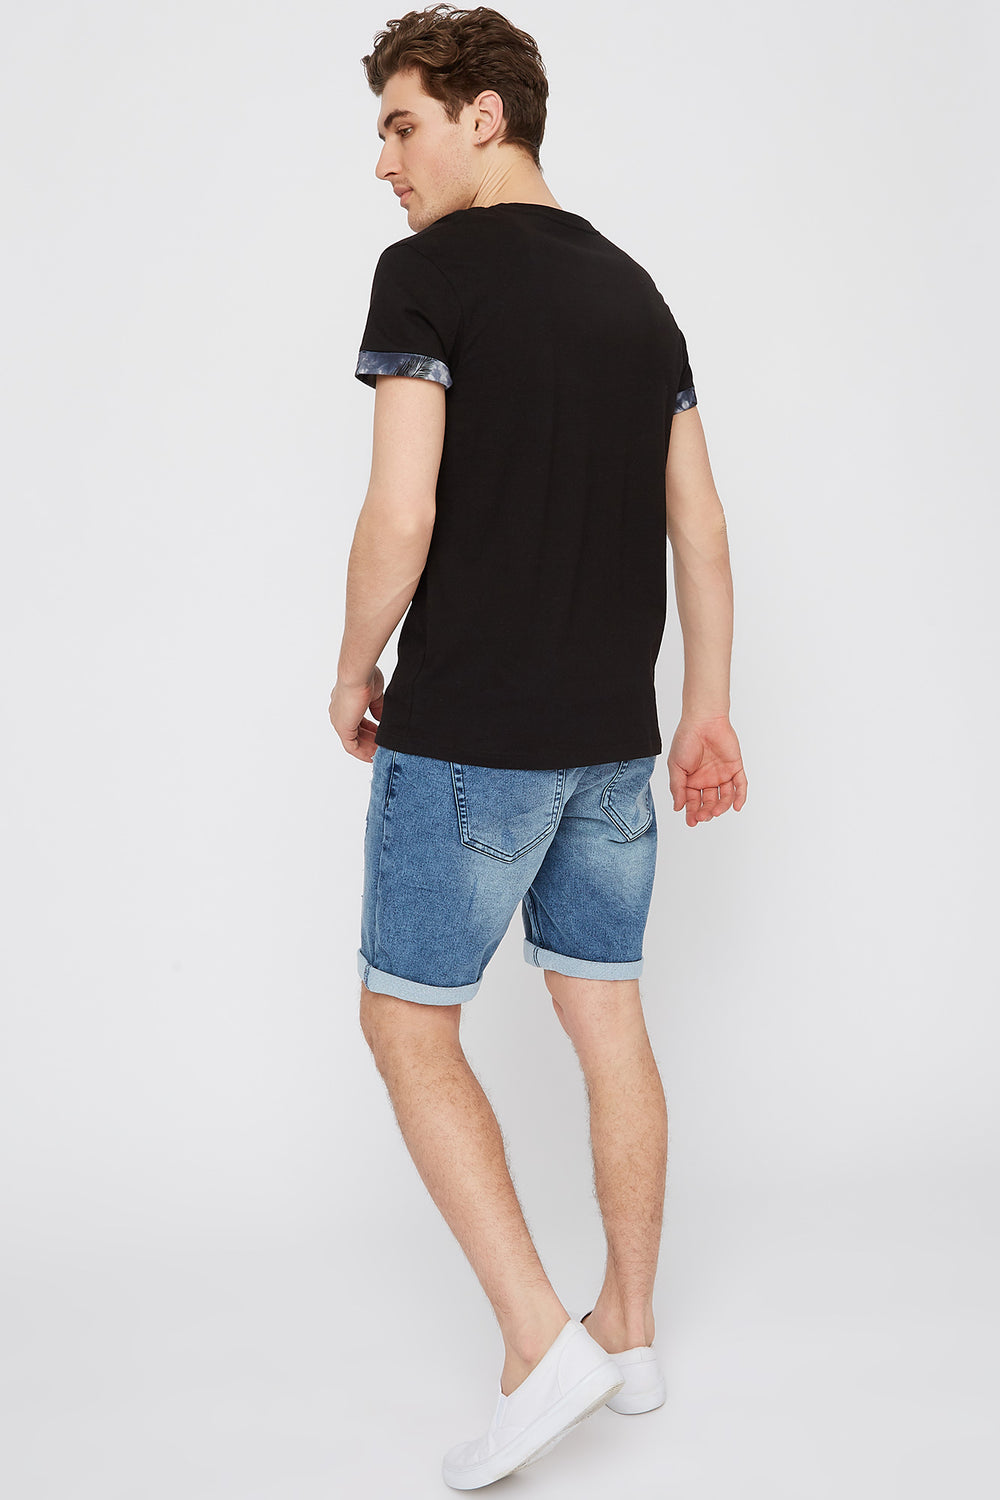 Contrast Pocket Cuffed Sleeve T-Shirt Black